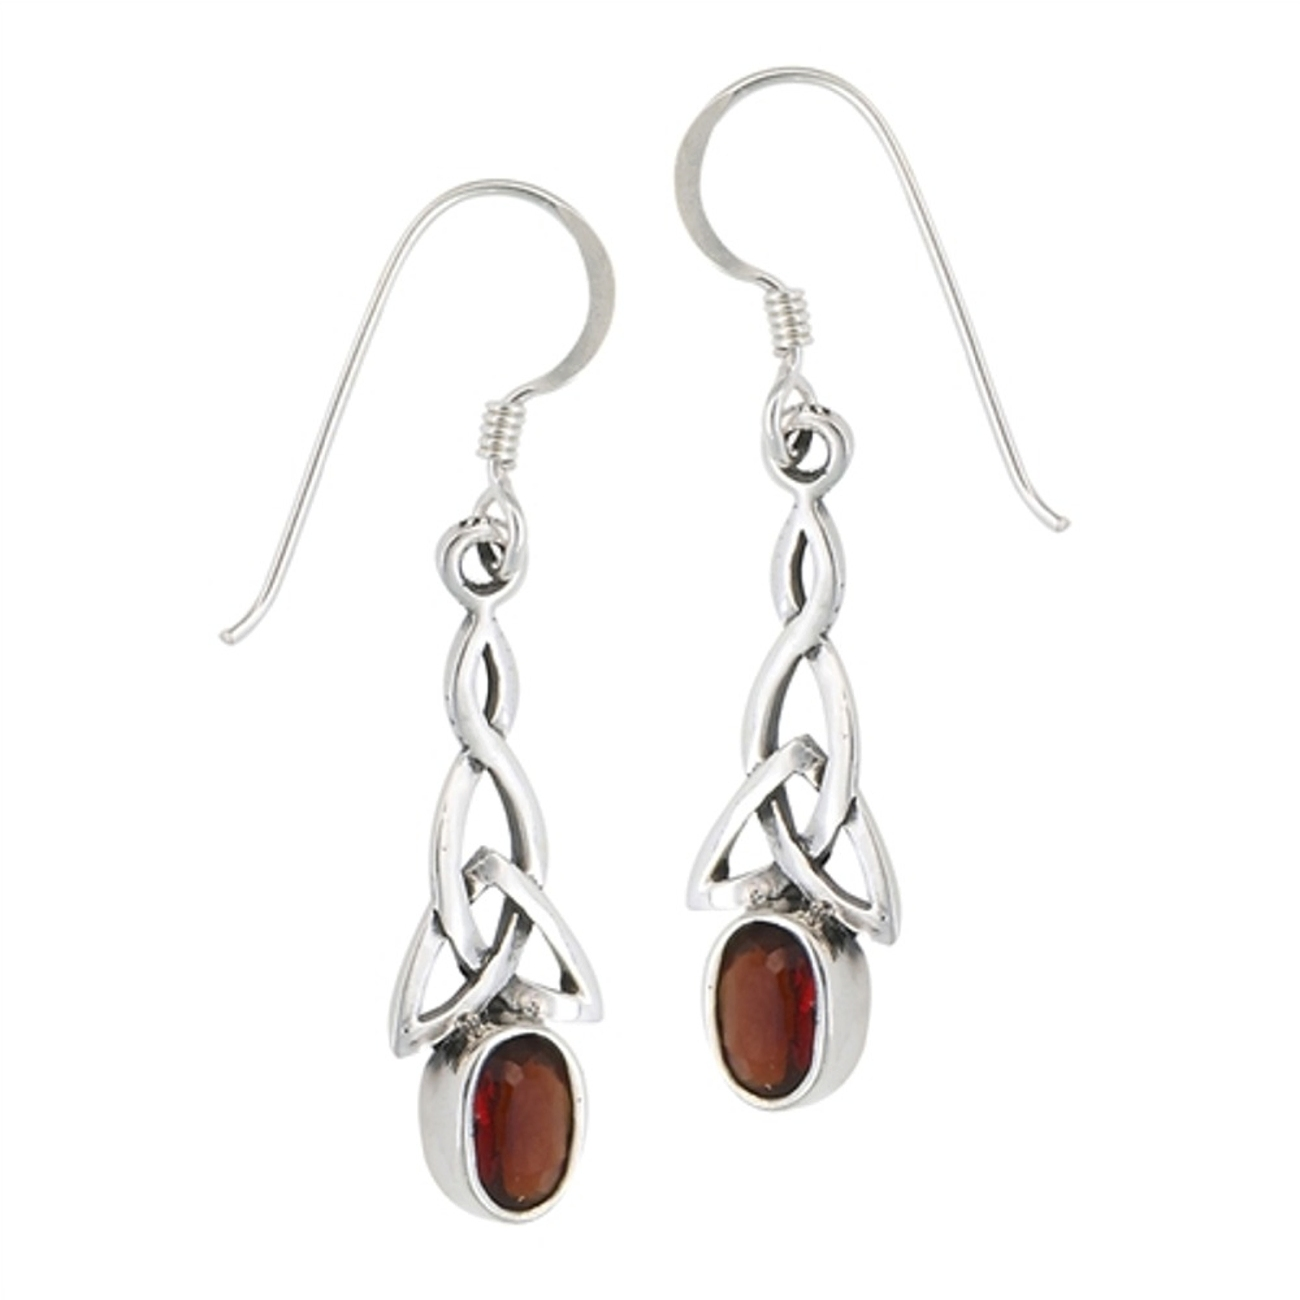 Celtic Imitation Garnet Earrings